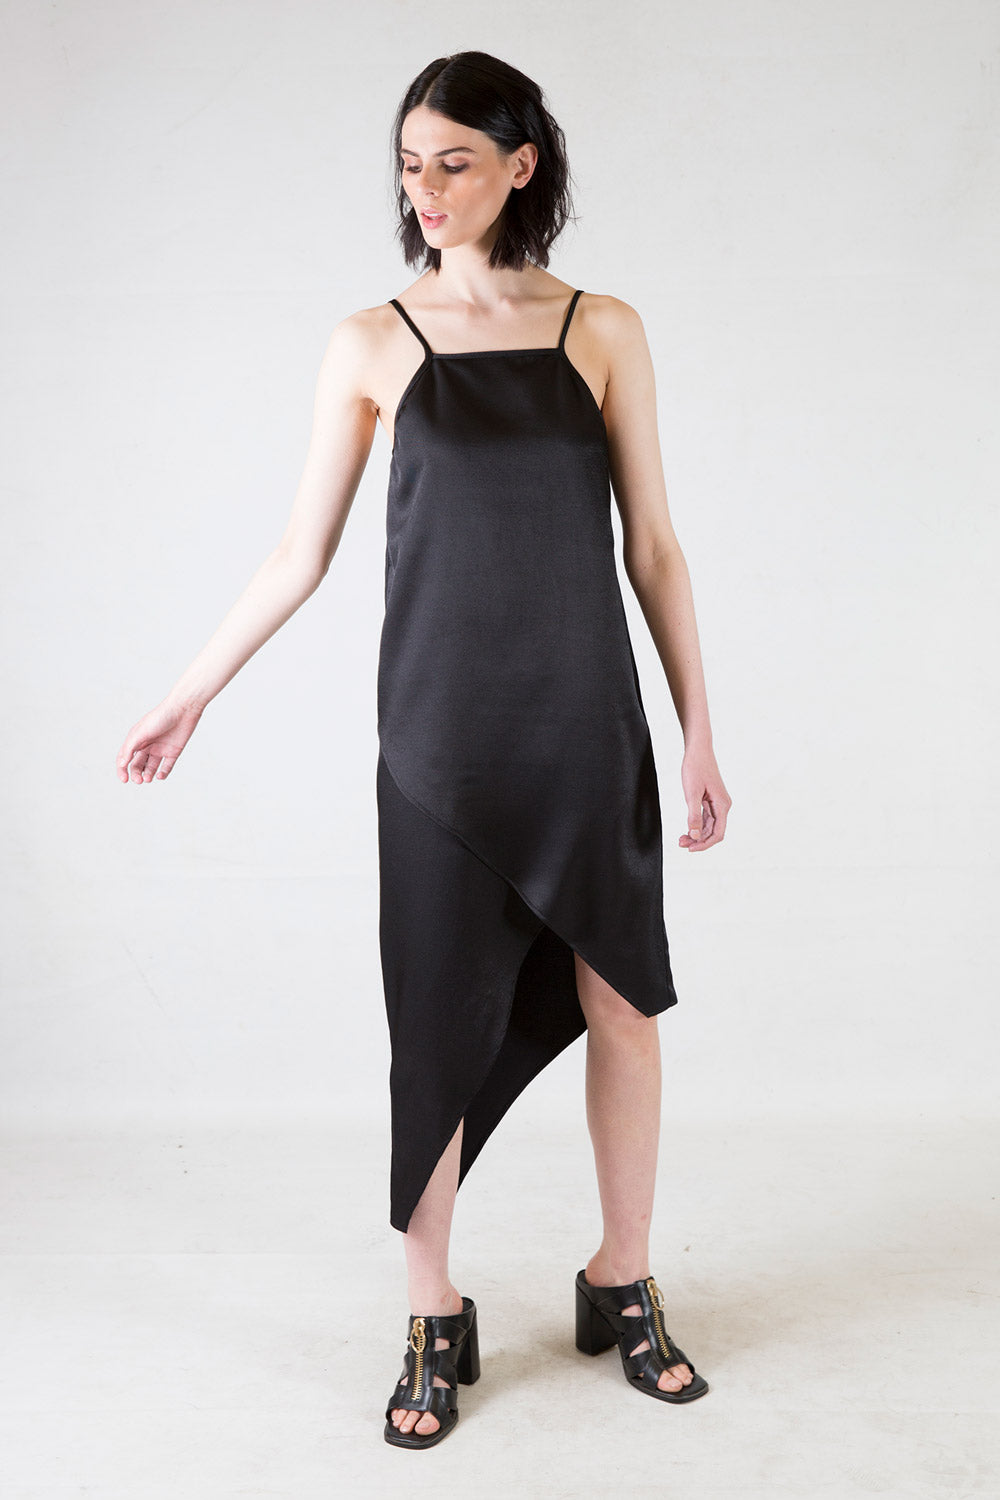 Michael Dress | Young + Resolute | Annah Stretton